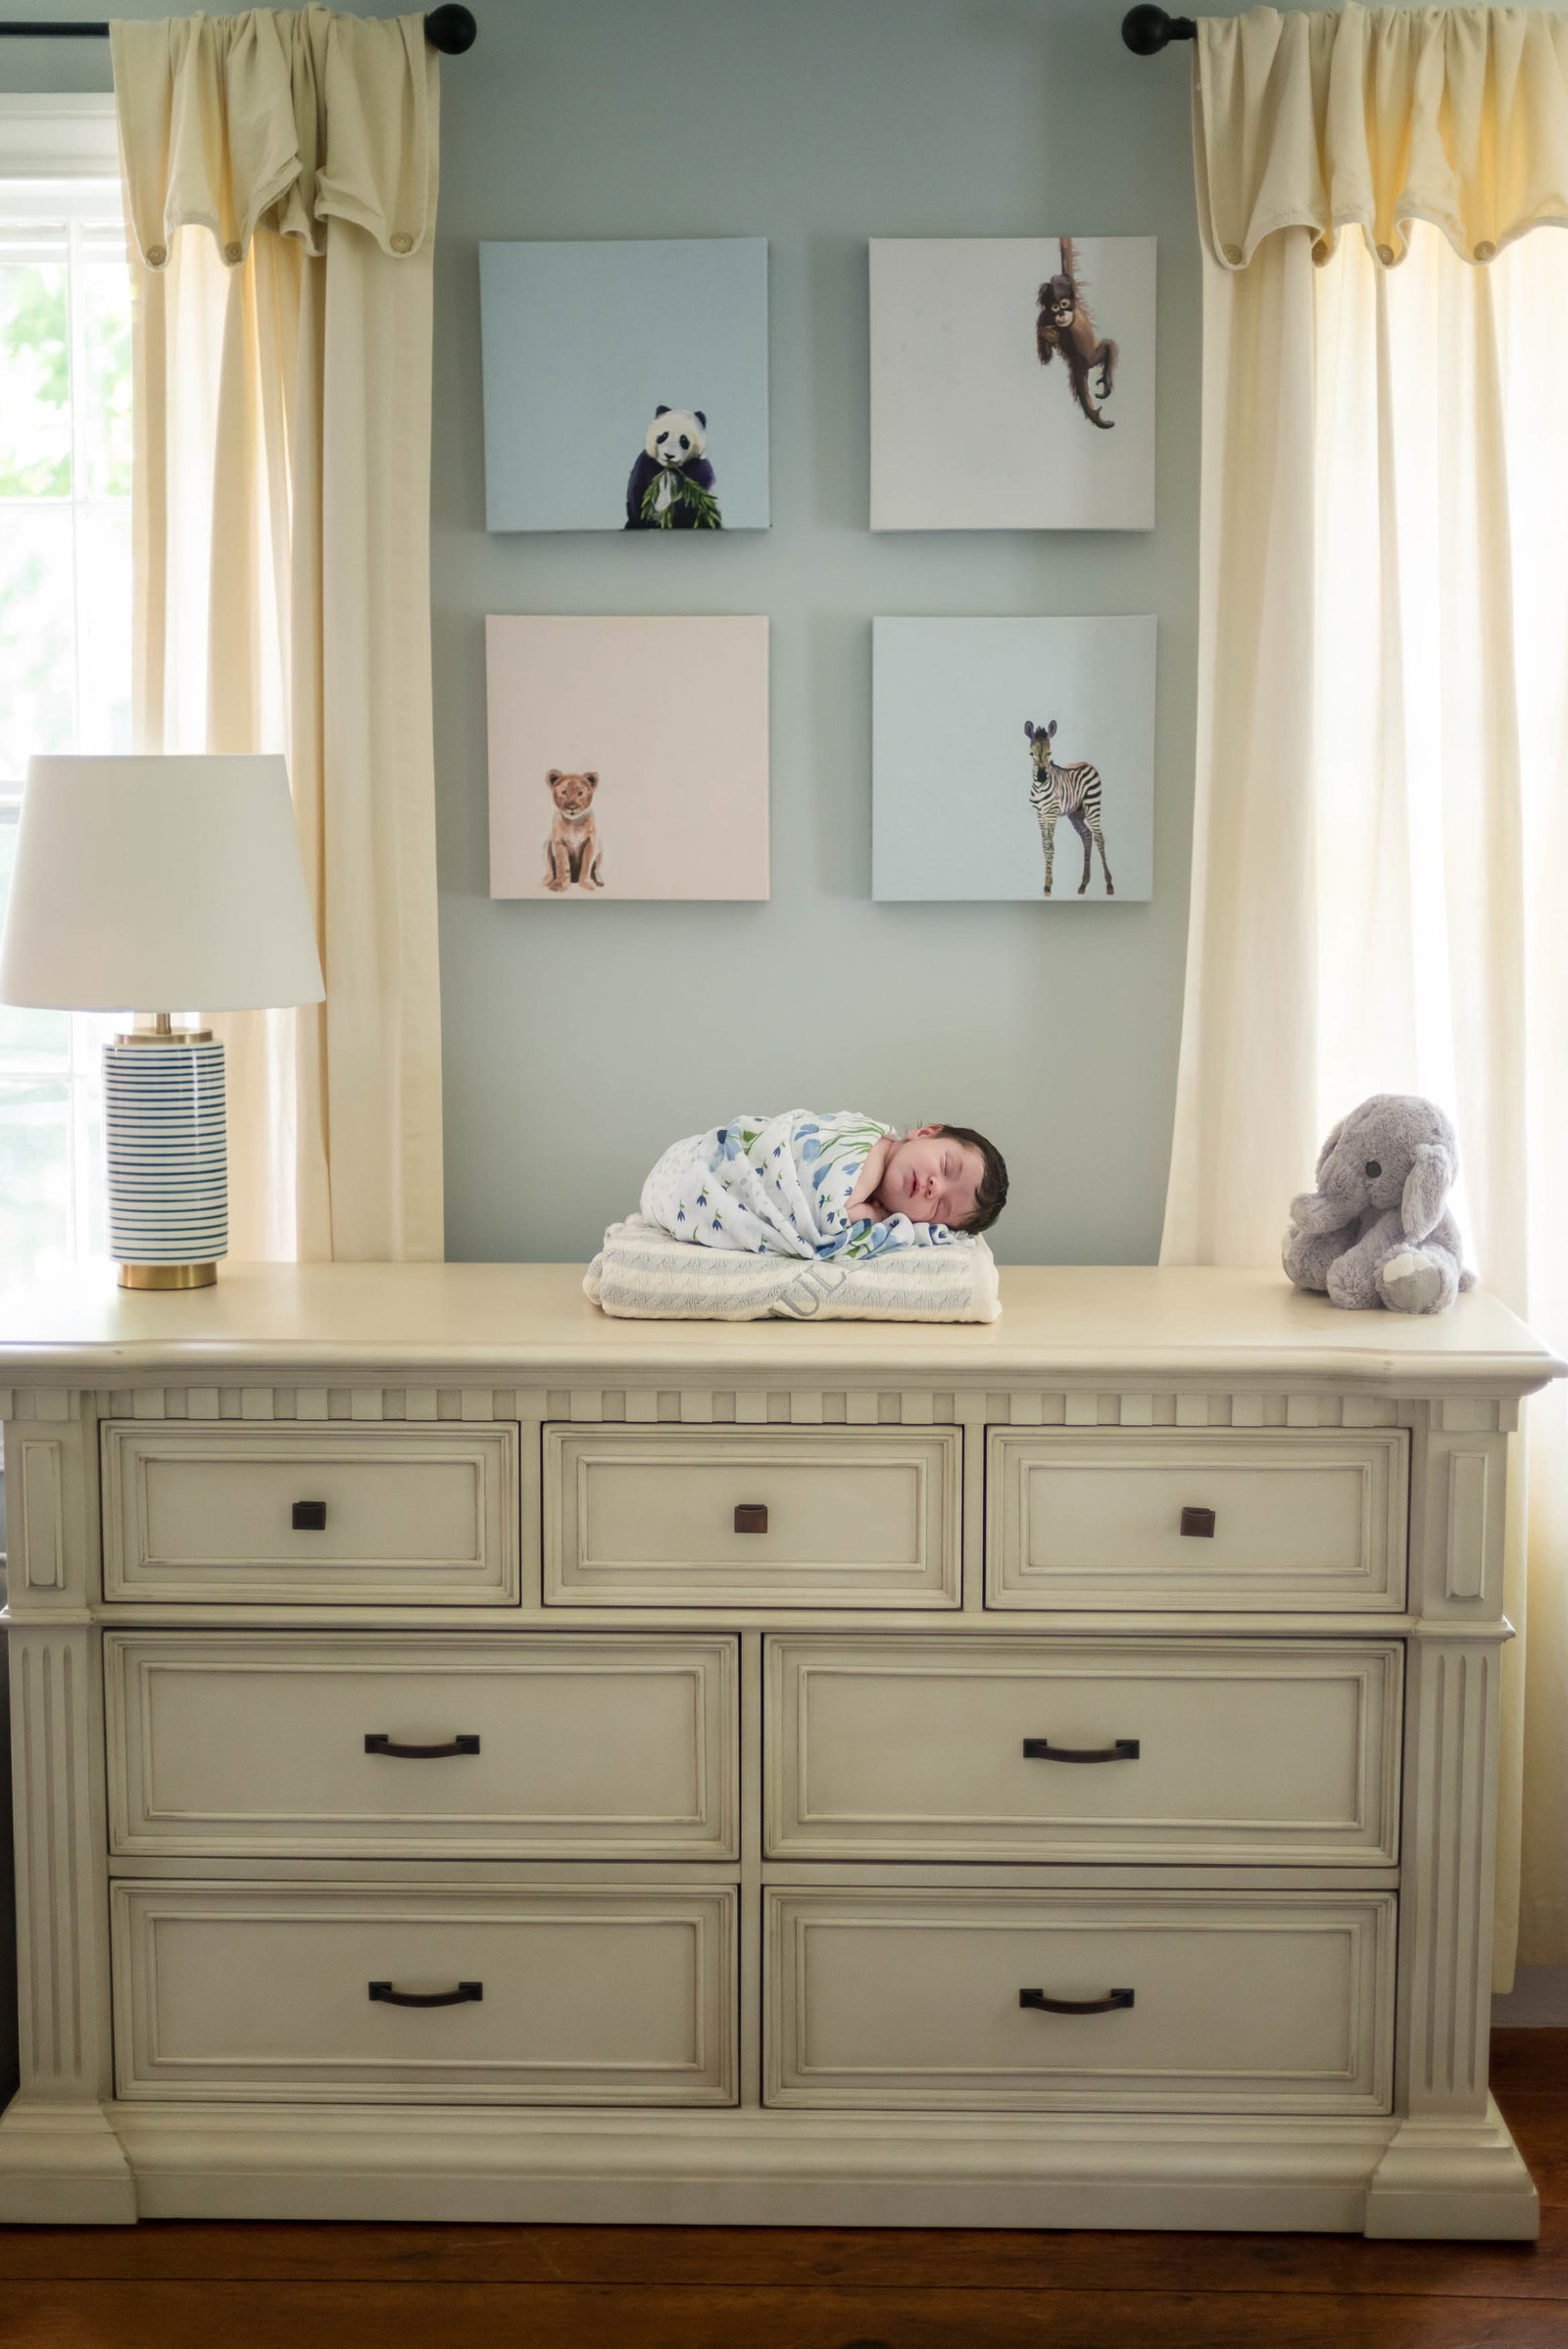 Boston-Newborn-Photographer-Lifestyle-Documentary-Home-Styled-Session-409